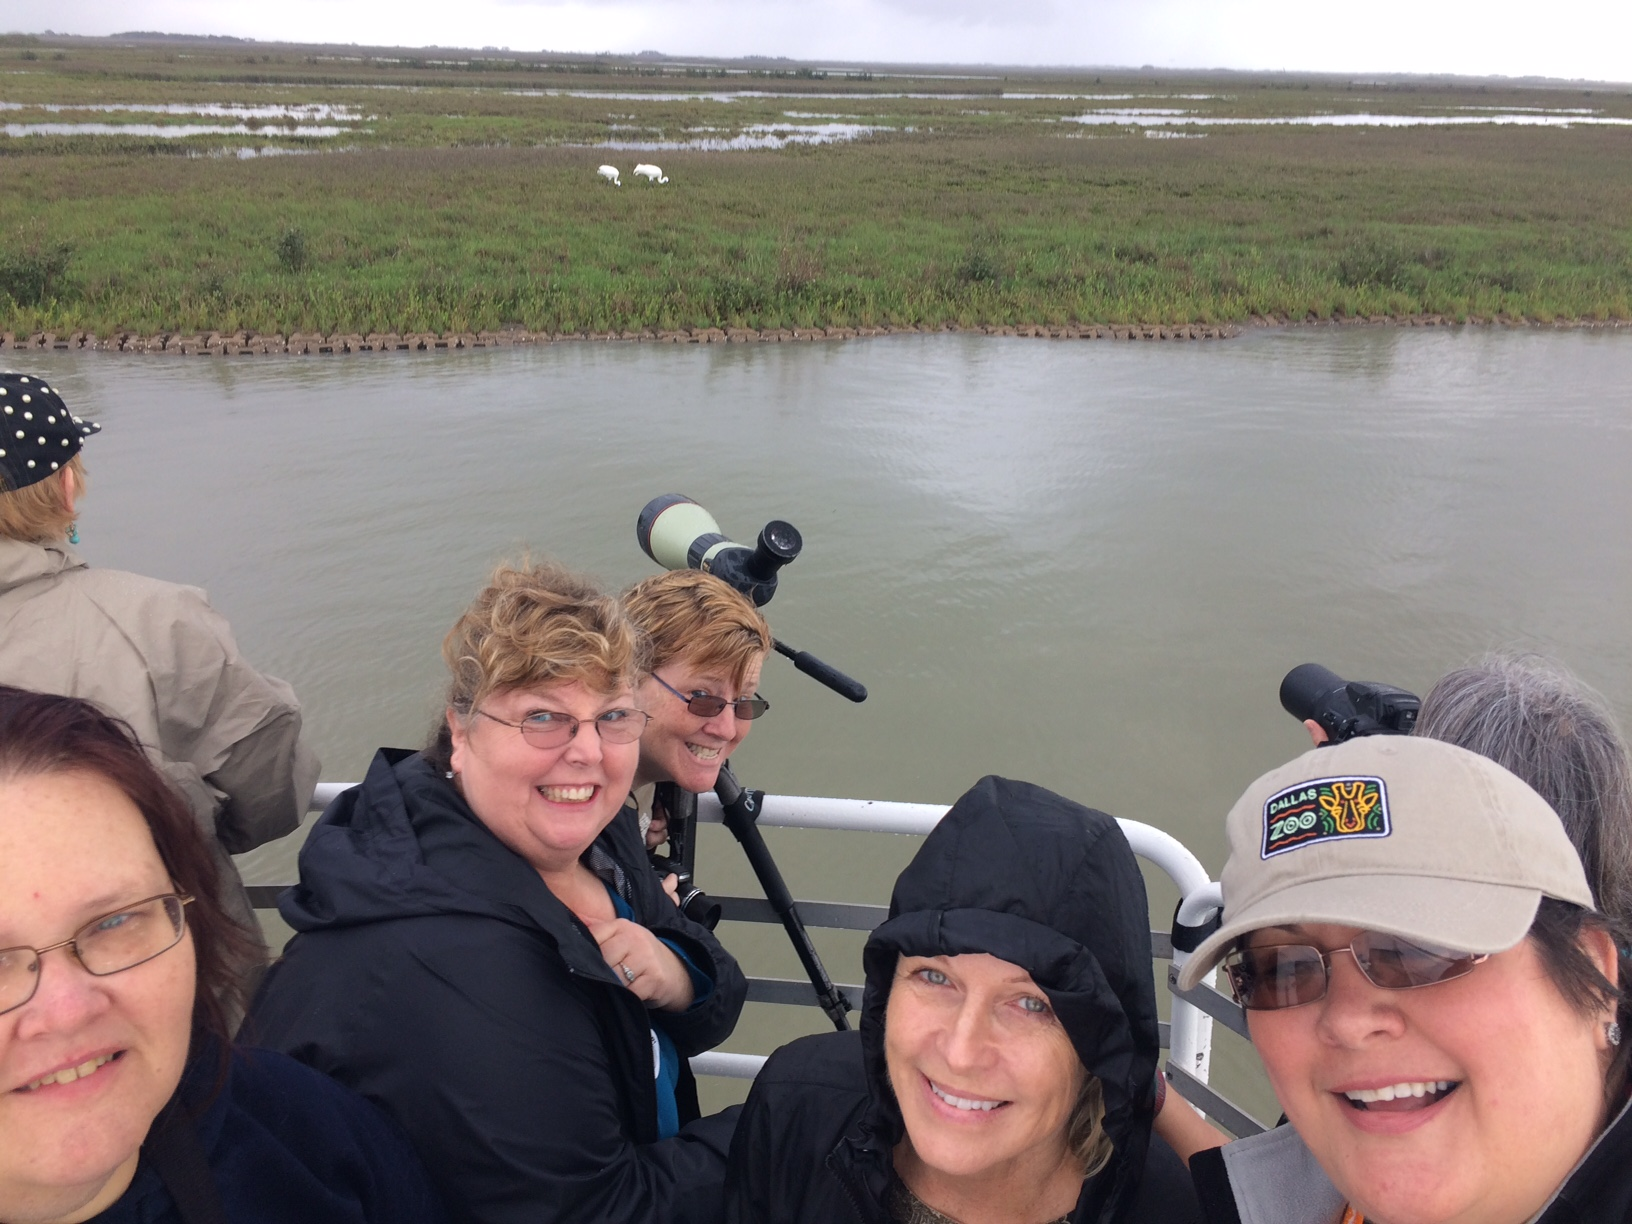 The team observes the endangered whooping crane in the Aransas National Wildlife Refuge